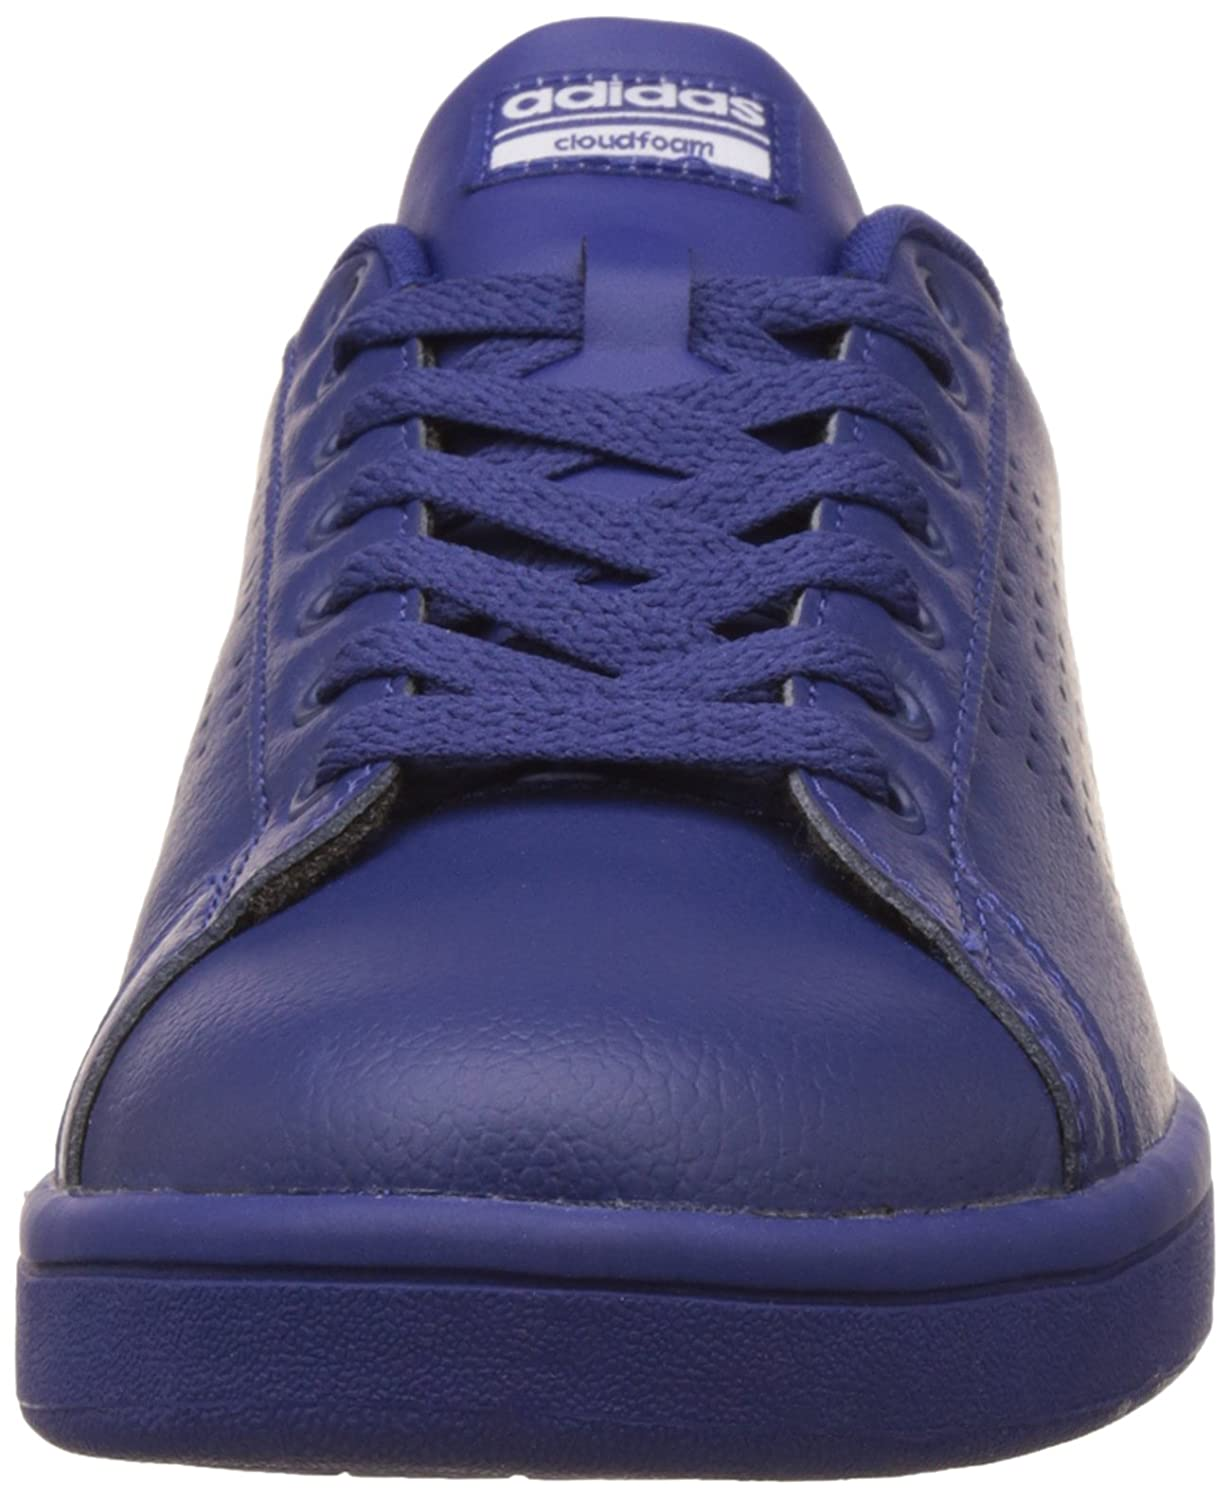 sports shoes b6fce 000b5 adidas neo Womens Cloudfoam Advantage Clean W Uniink and Ftwwht Sneakers -  4 UKIndia (36.67 EU) Buy Online at Low Prices in India - Amazon.in